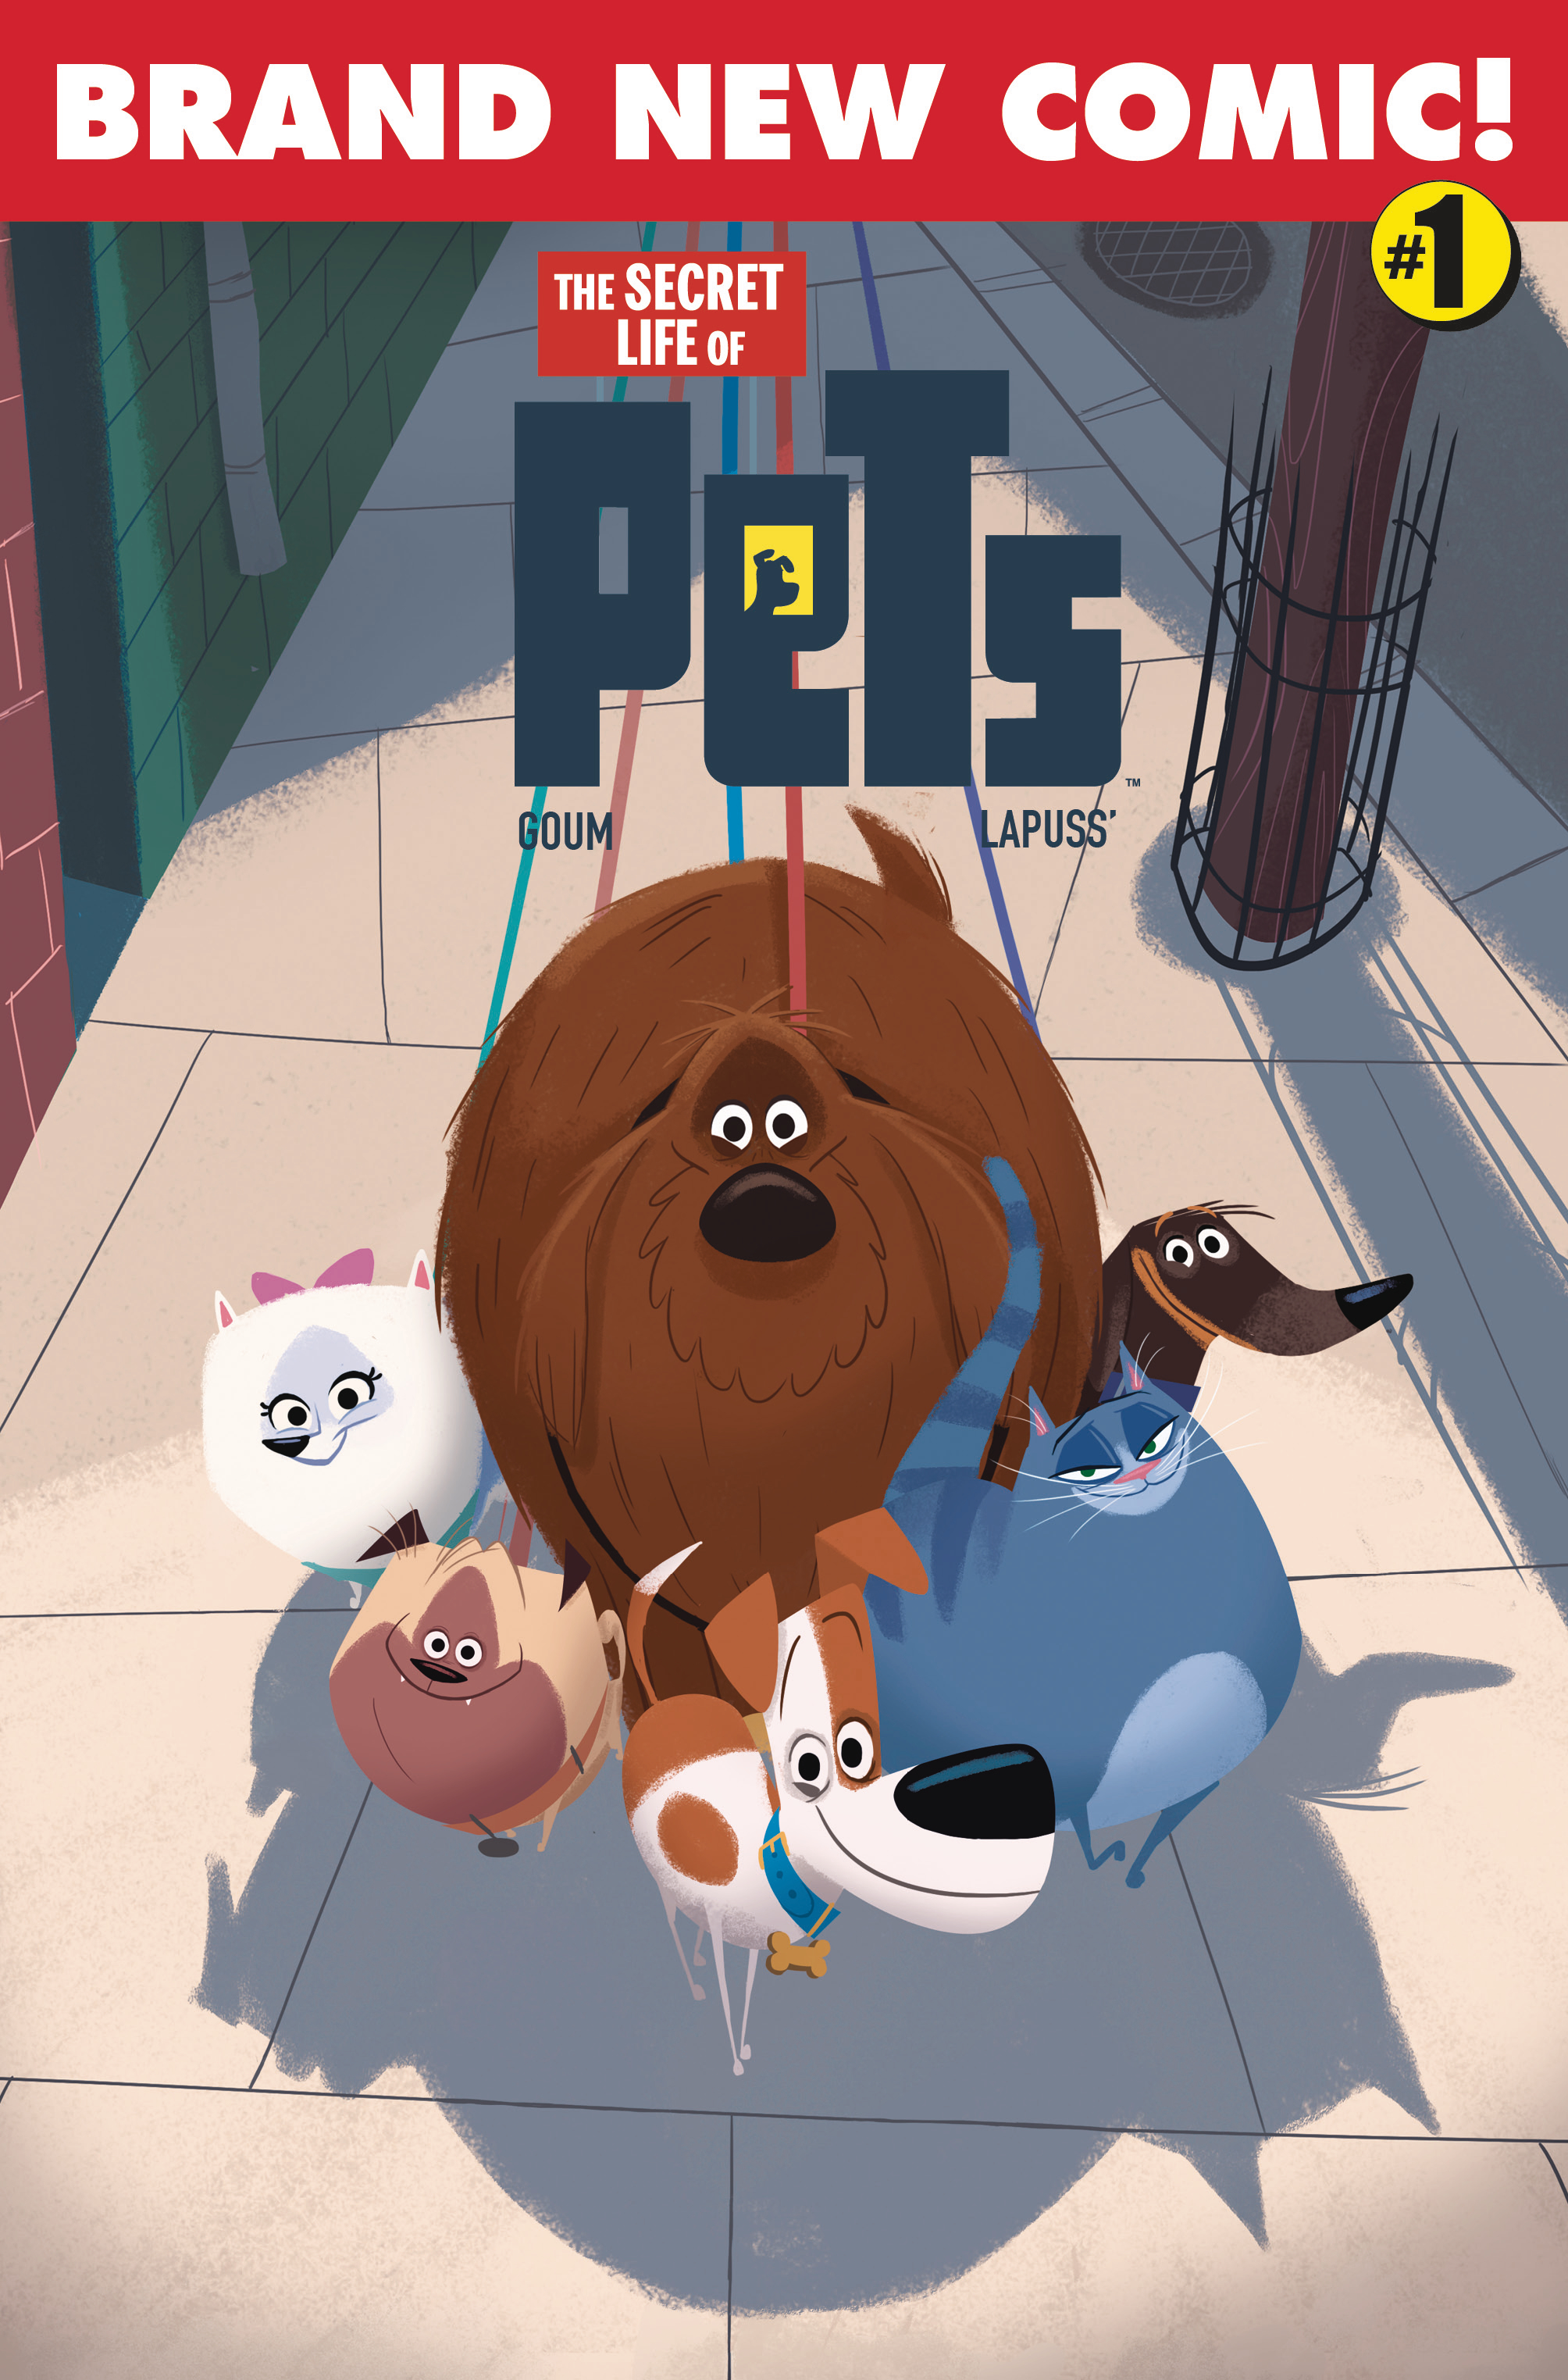 SECRET LIFE OF PETS #1 CVR B GOUM